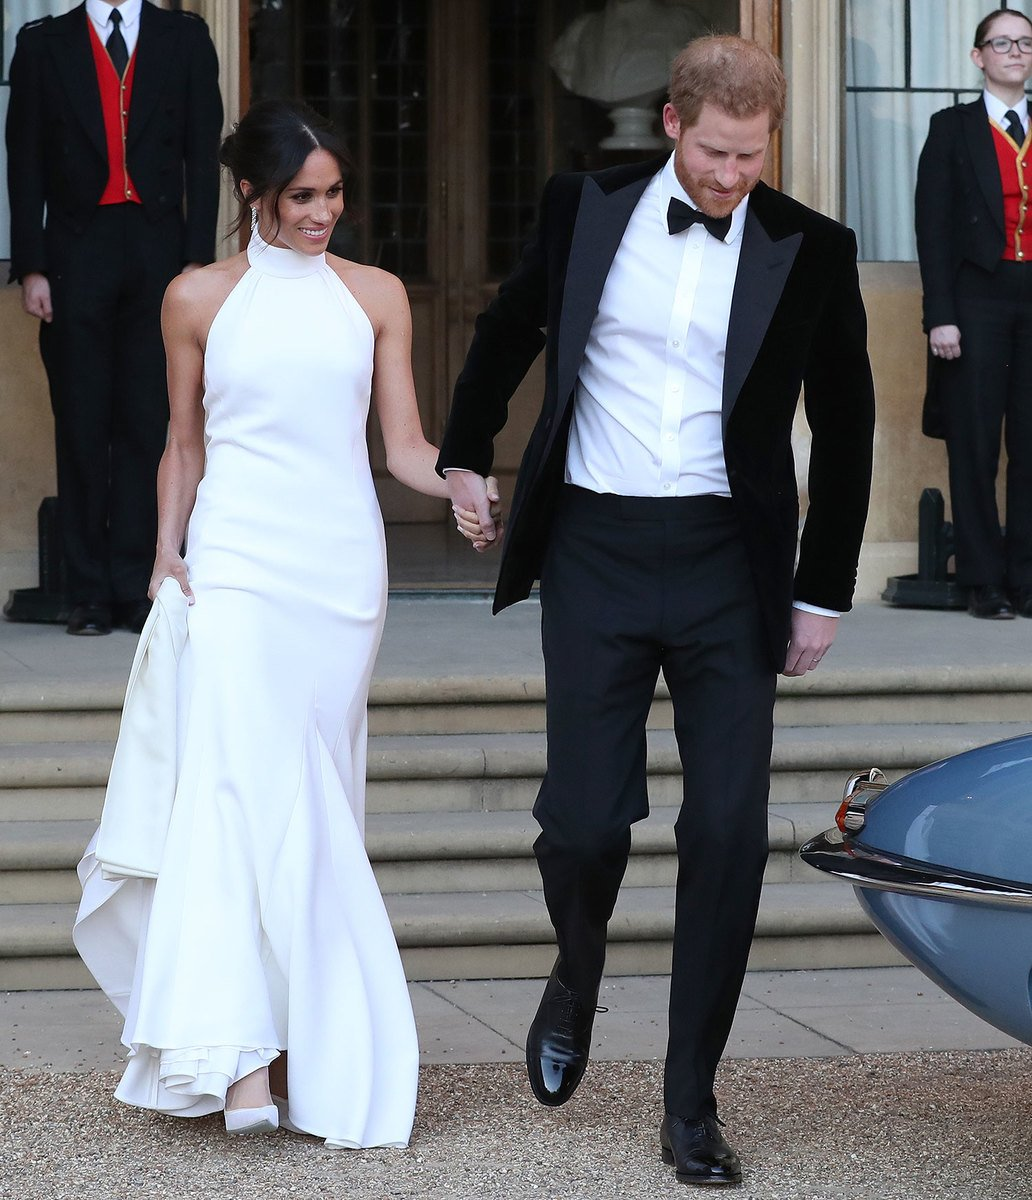 meghan-markles-givenchy-wedding-dress-was-absolutely-stunning